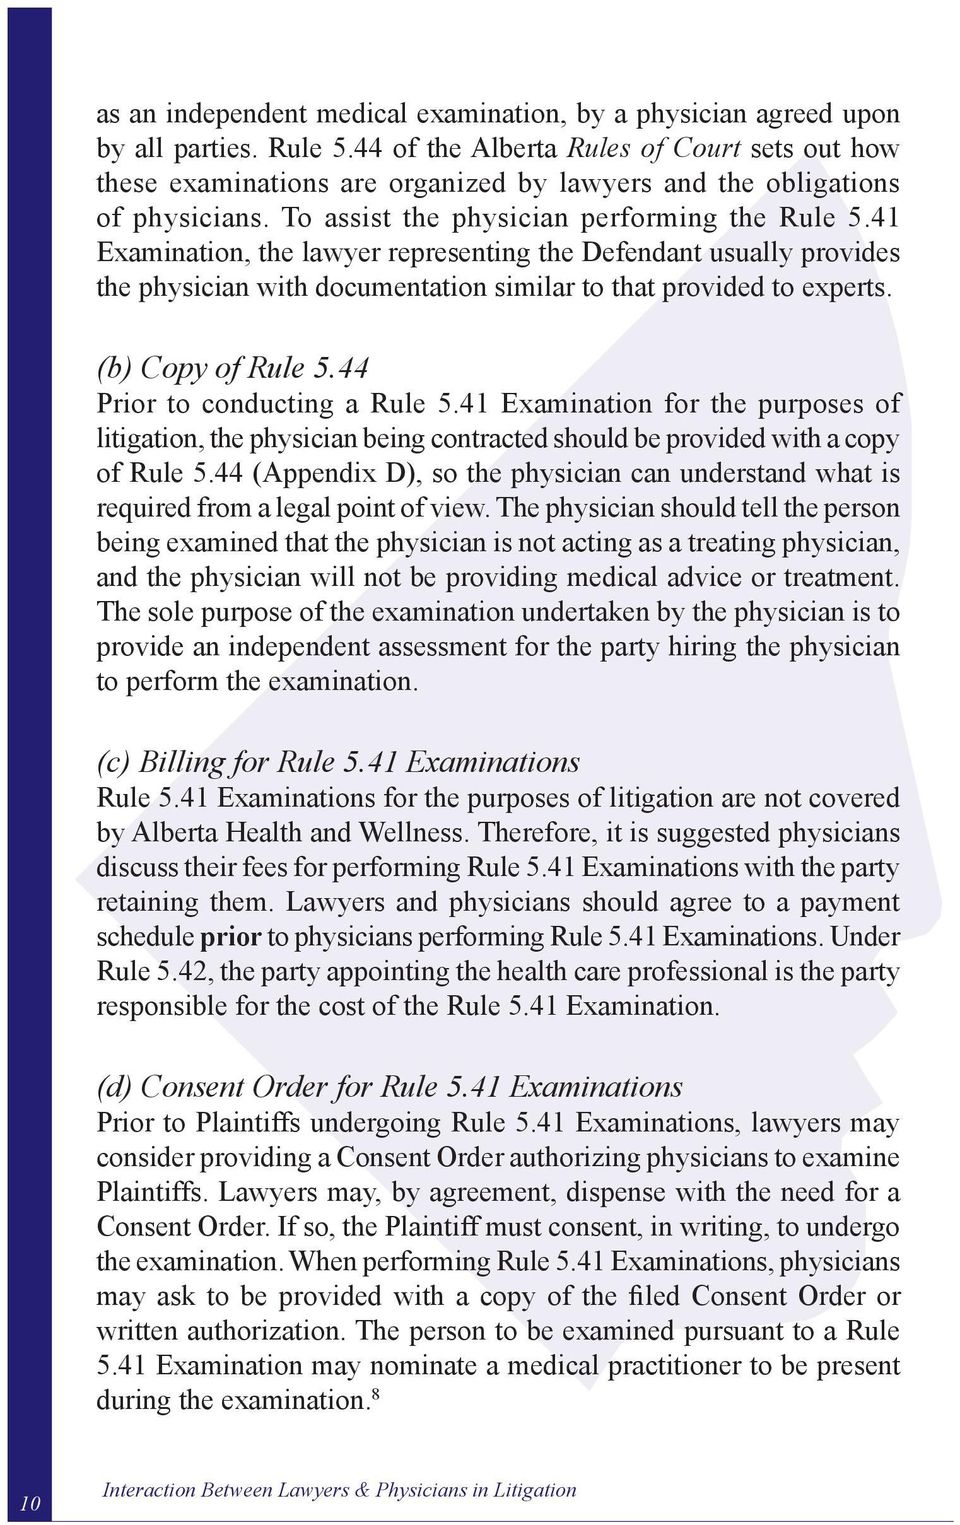 41 Examination, the lawyer representing the Defendant usually provides the physician with documentation similar to that provided to experts. (b) Copy of Rule 5.44 Prior to conducting a Rule 5.